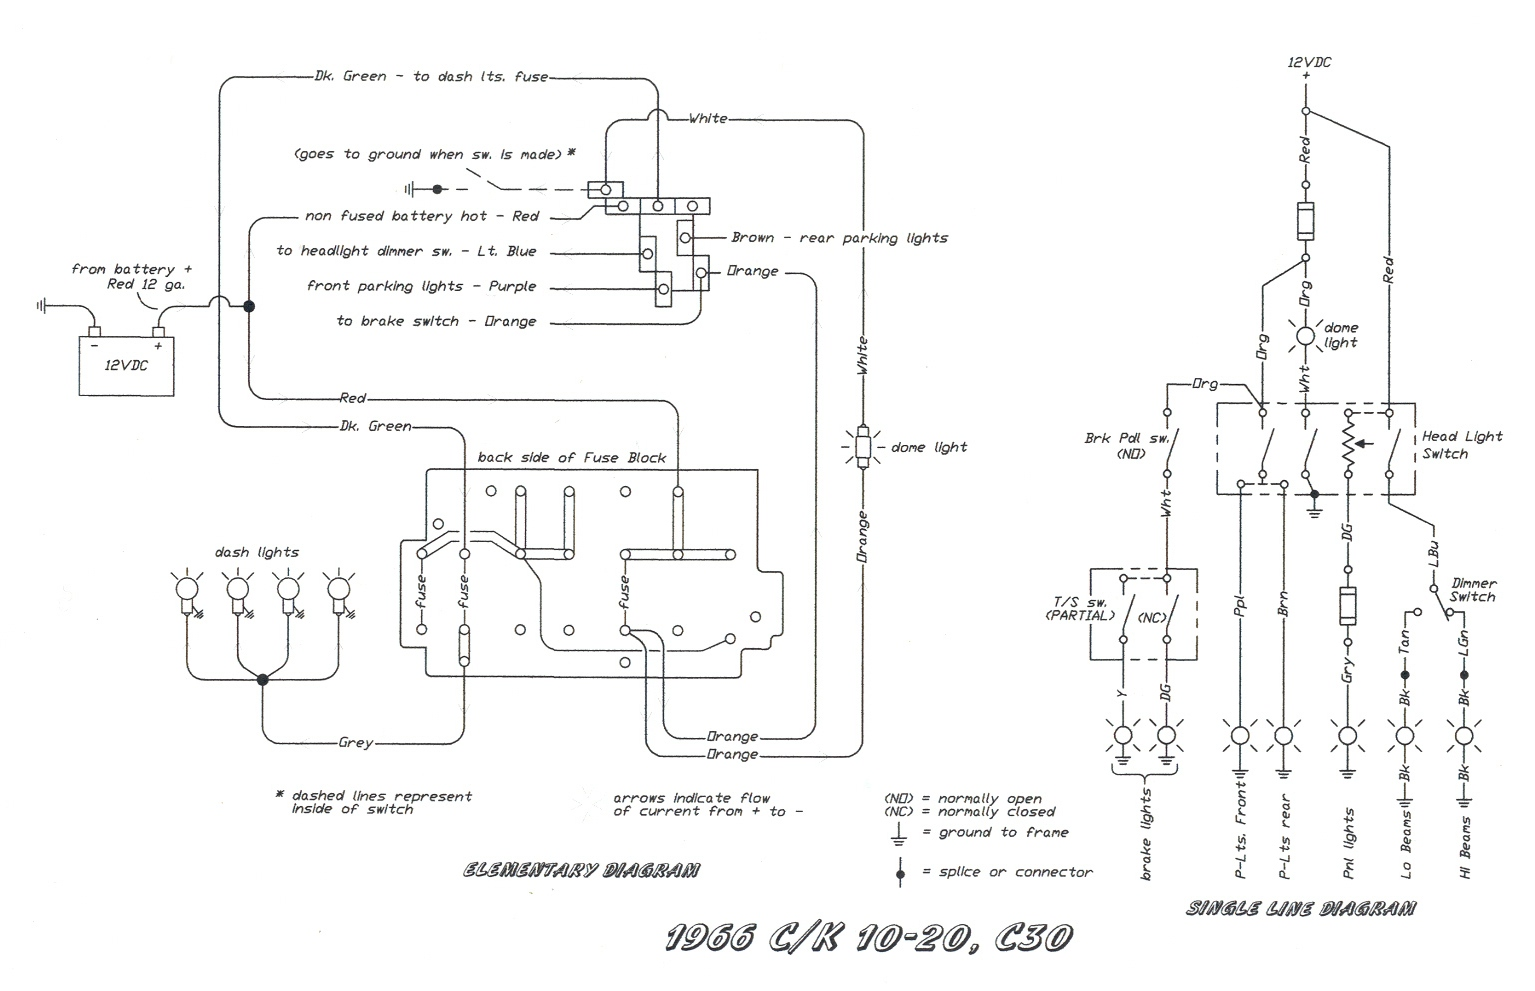 medium resolution of dimmer switch wiring diagram gmc wiring diagram blog 1959 gmc wiring diagram wiring diagram page dimmer